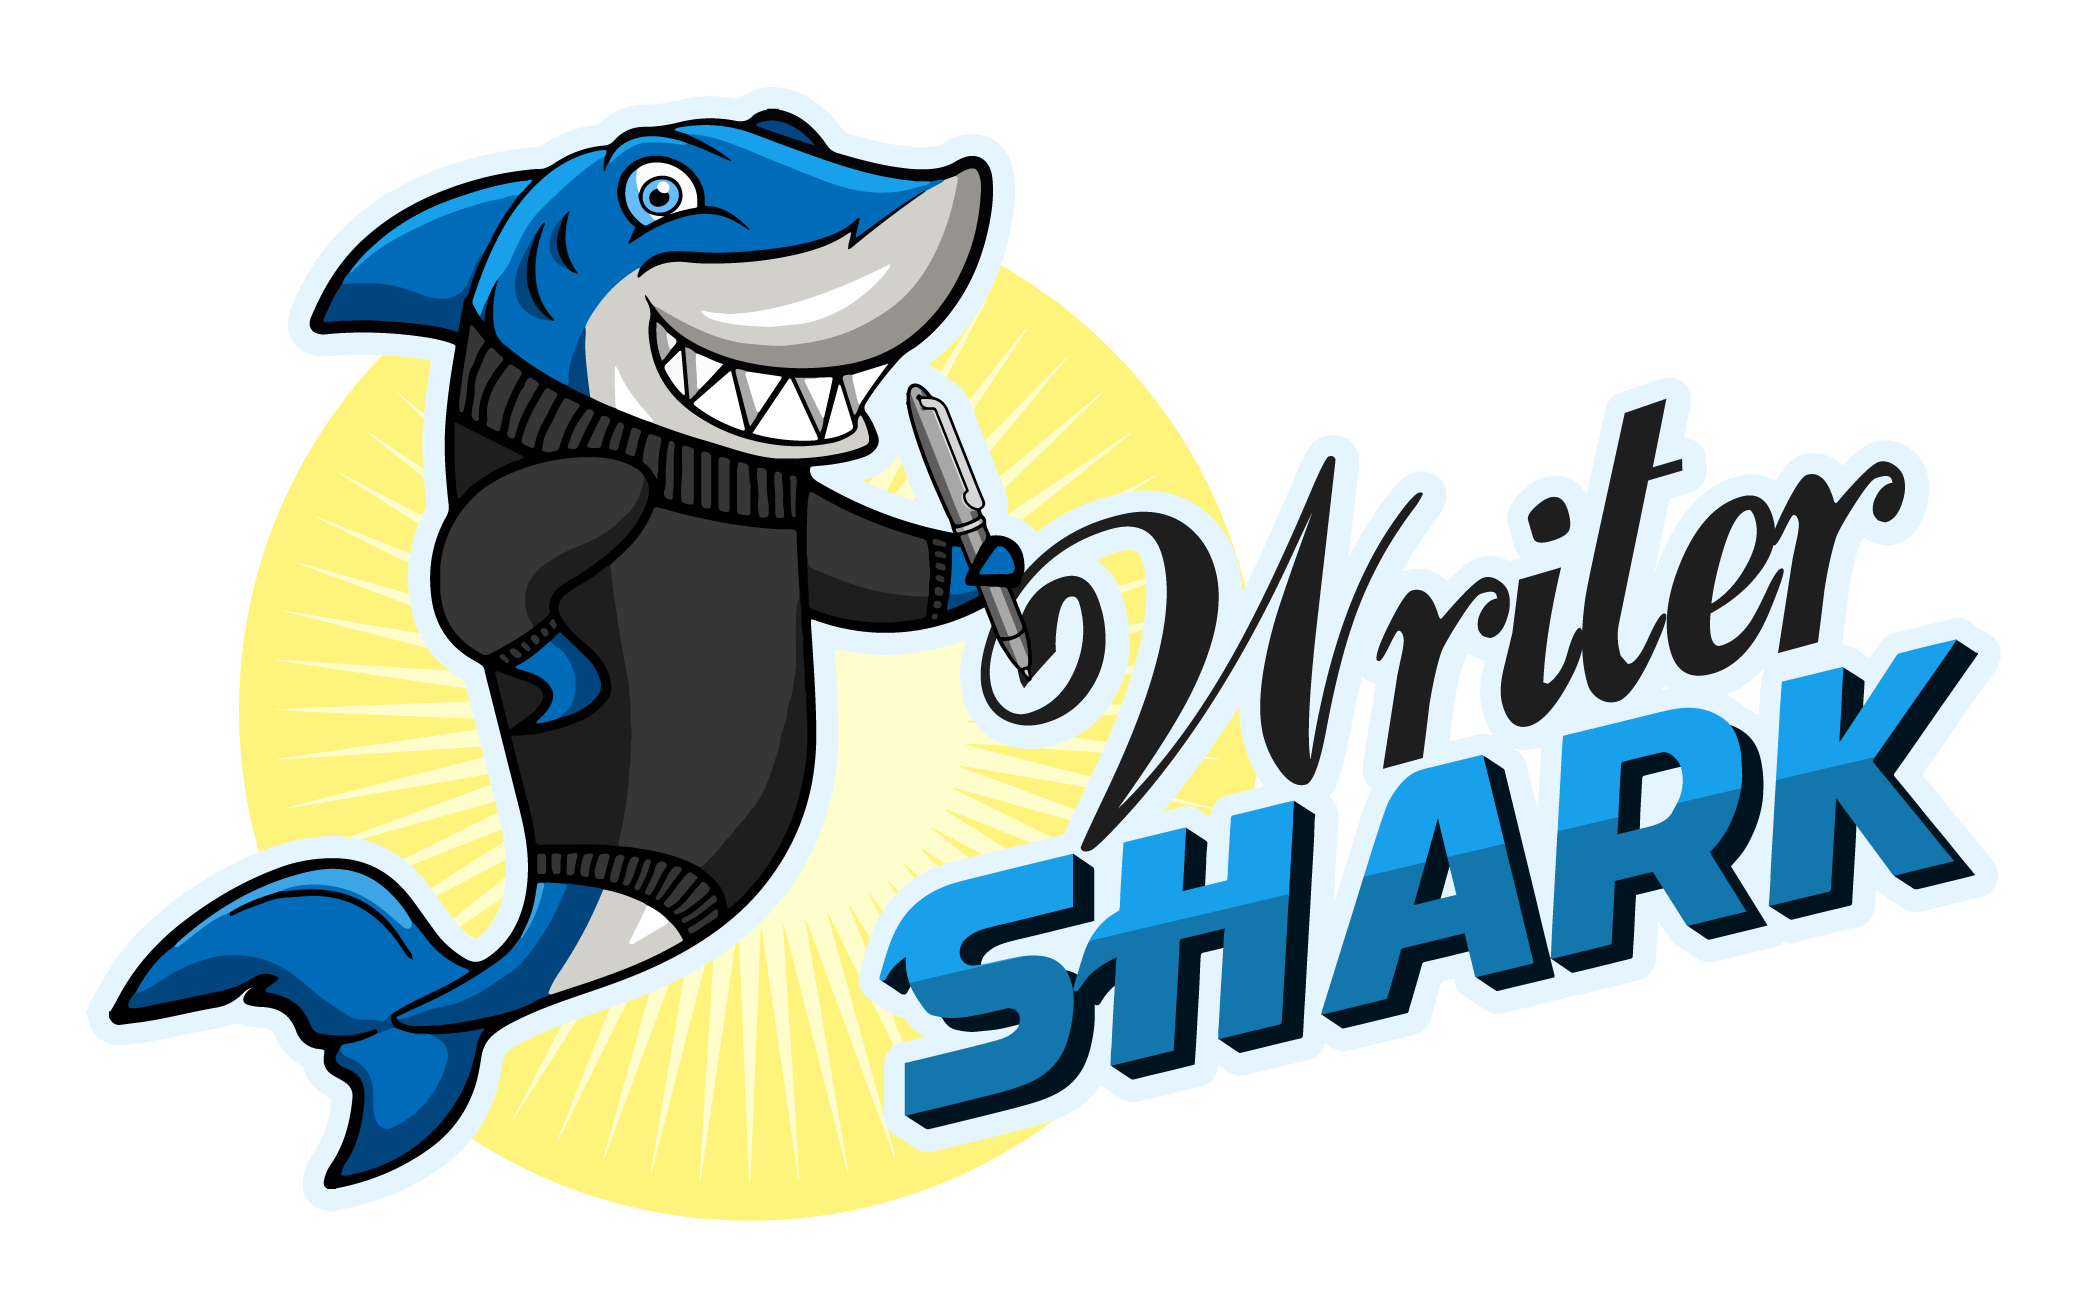 Writer Shark Logo